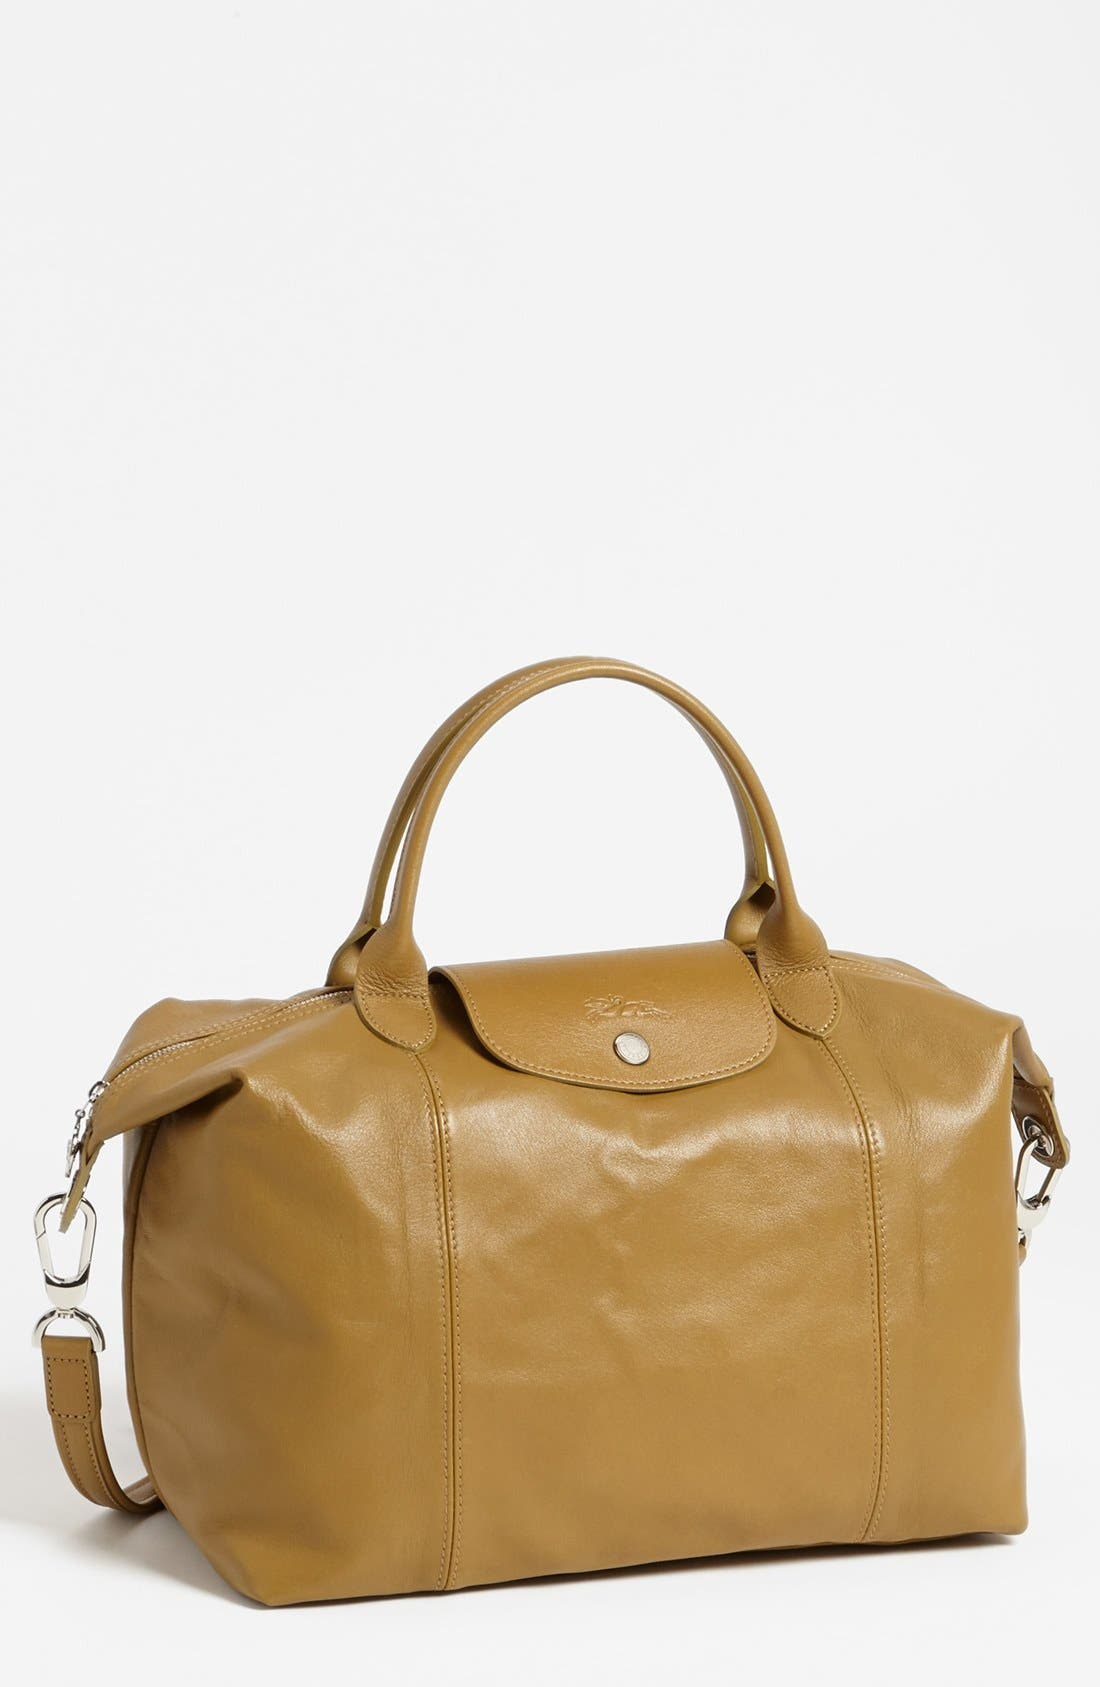 Medium 'Le Pliage Cuir' Leather Top Handle Tote,                             Main thumbnail 33, color,